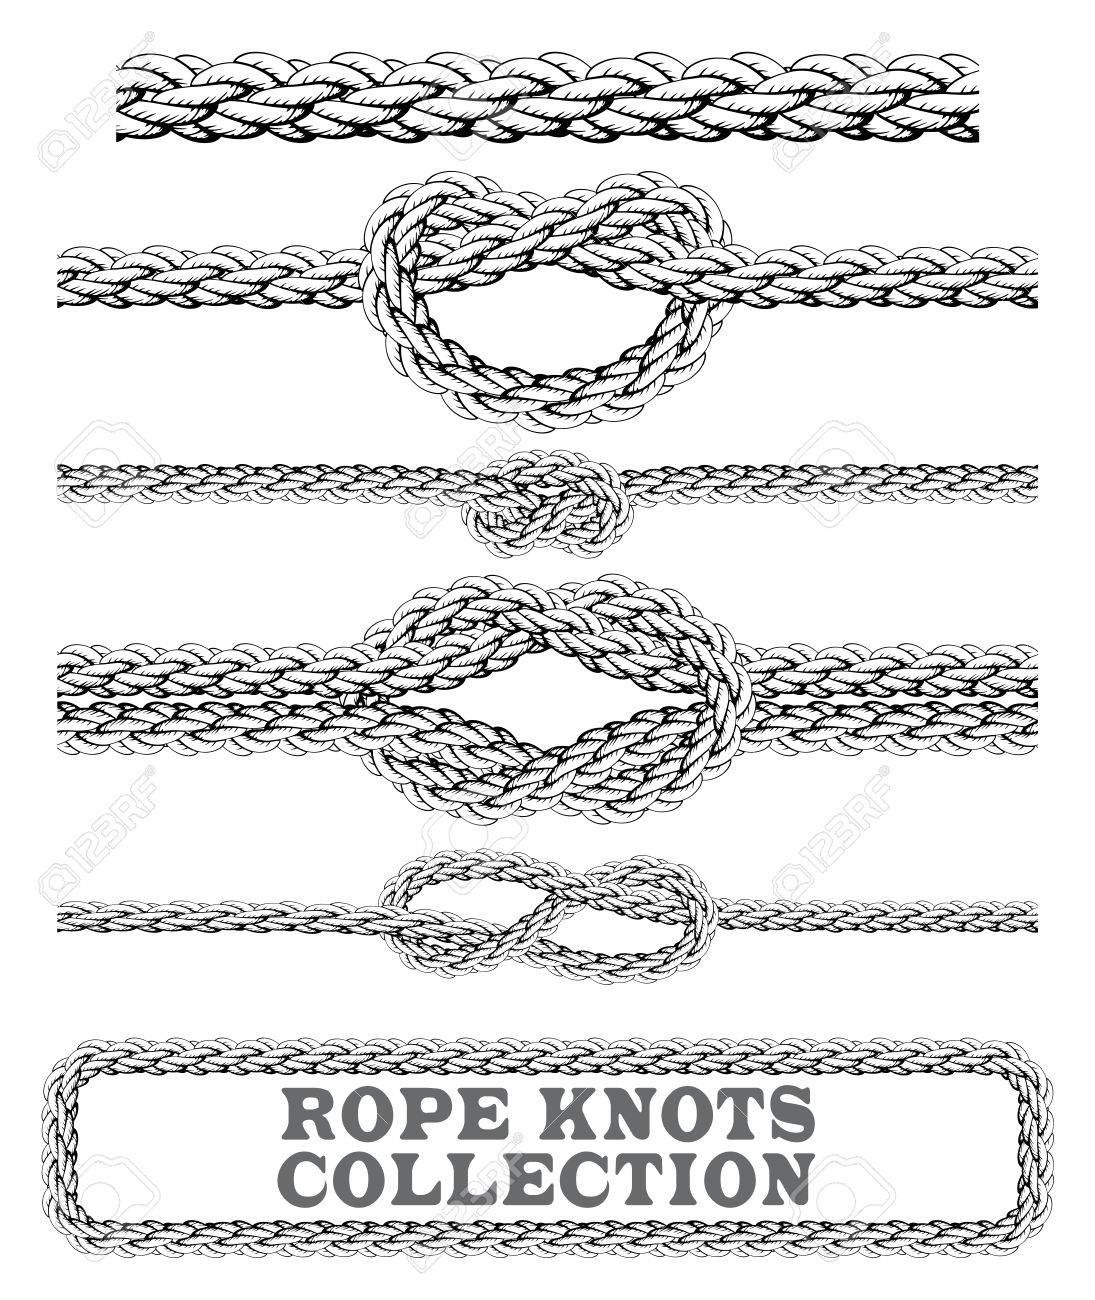 Square Knots Knot Diagram Photo Stock Vector Rope Collection Overhand Figure Of Eight And Seamless Decorative Elements